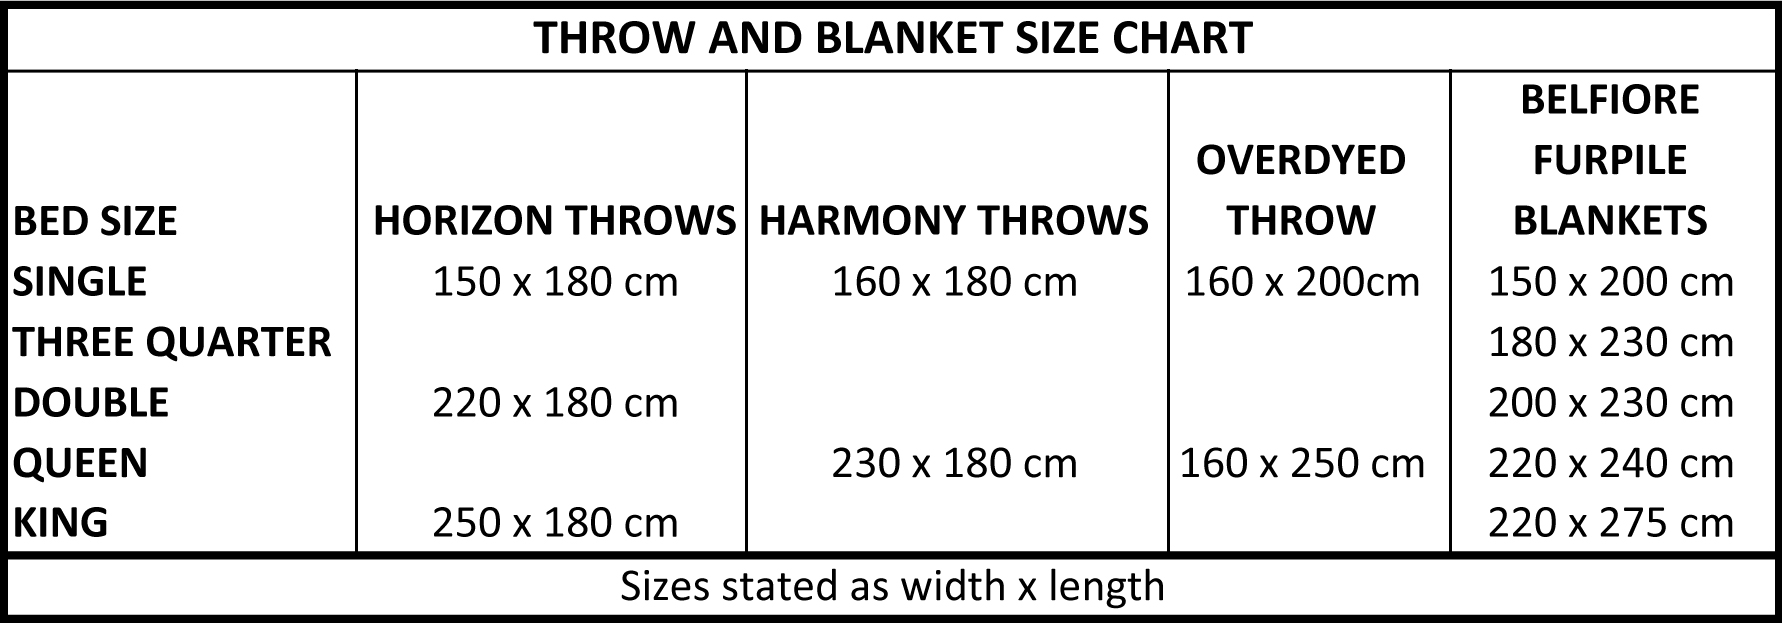 Throw Size chart